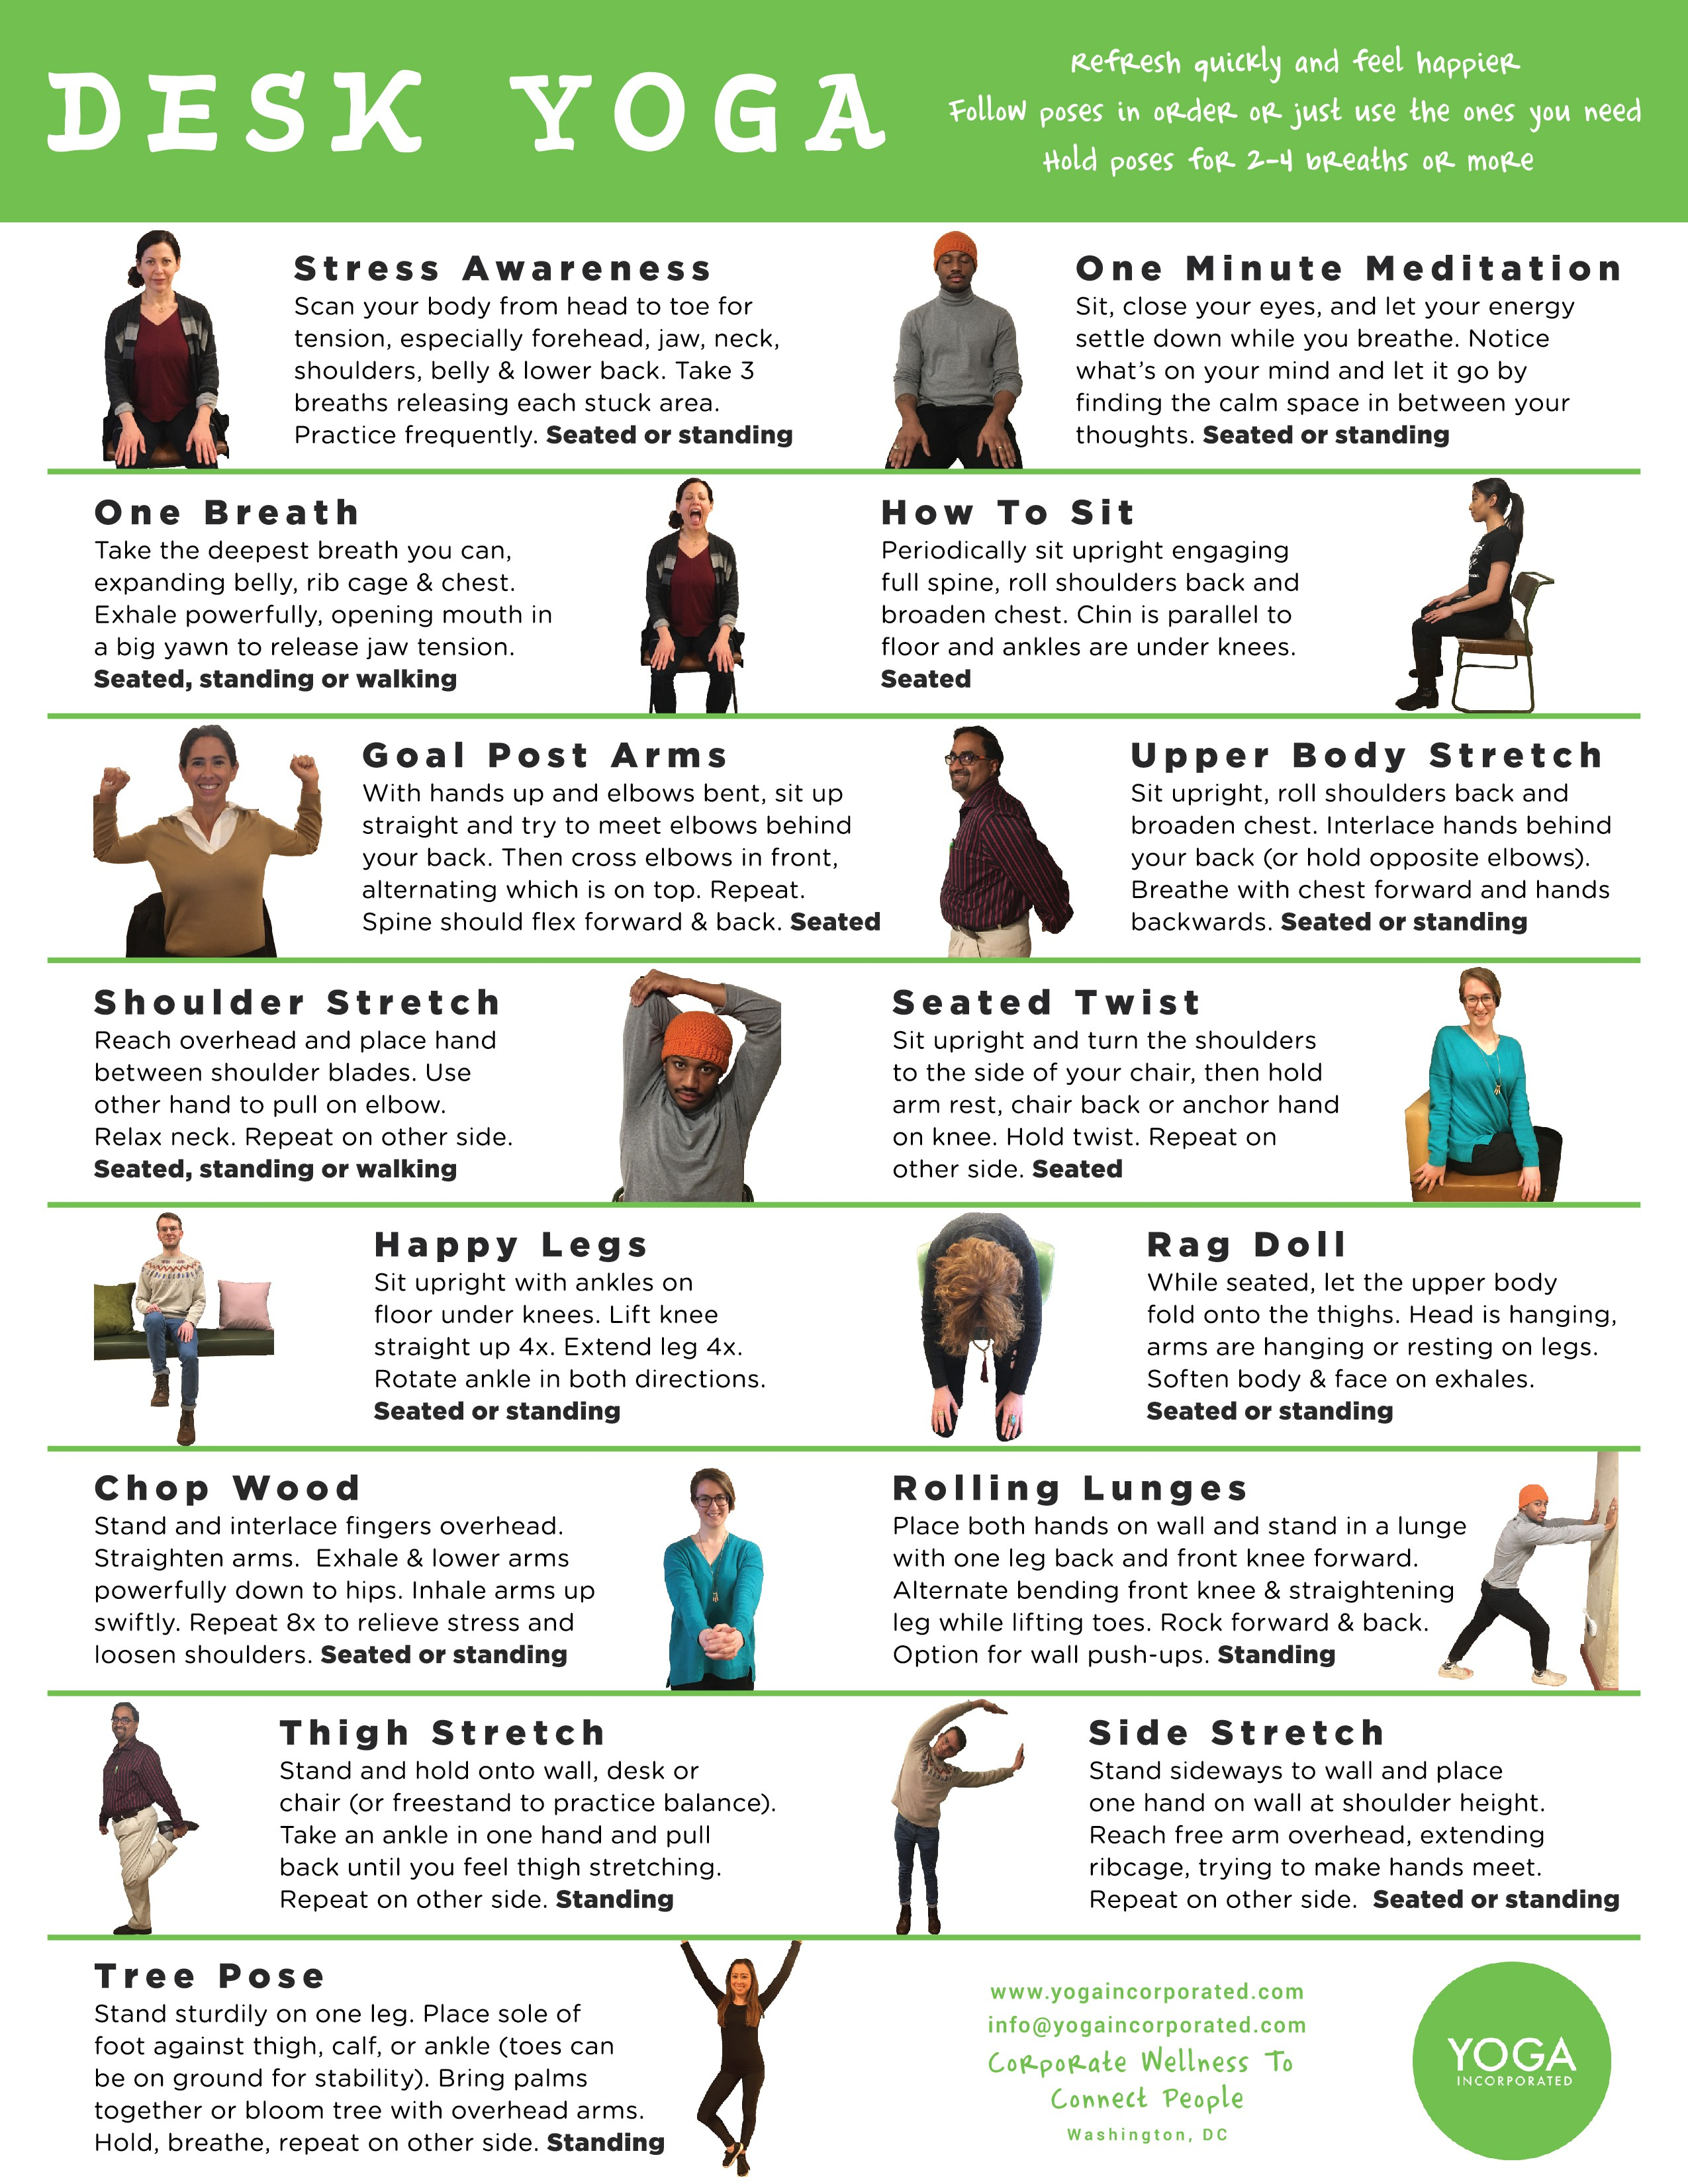 Yoga Pose Pictures